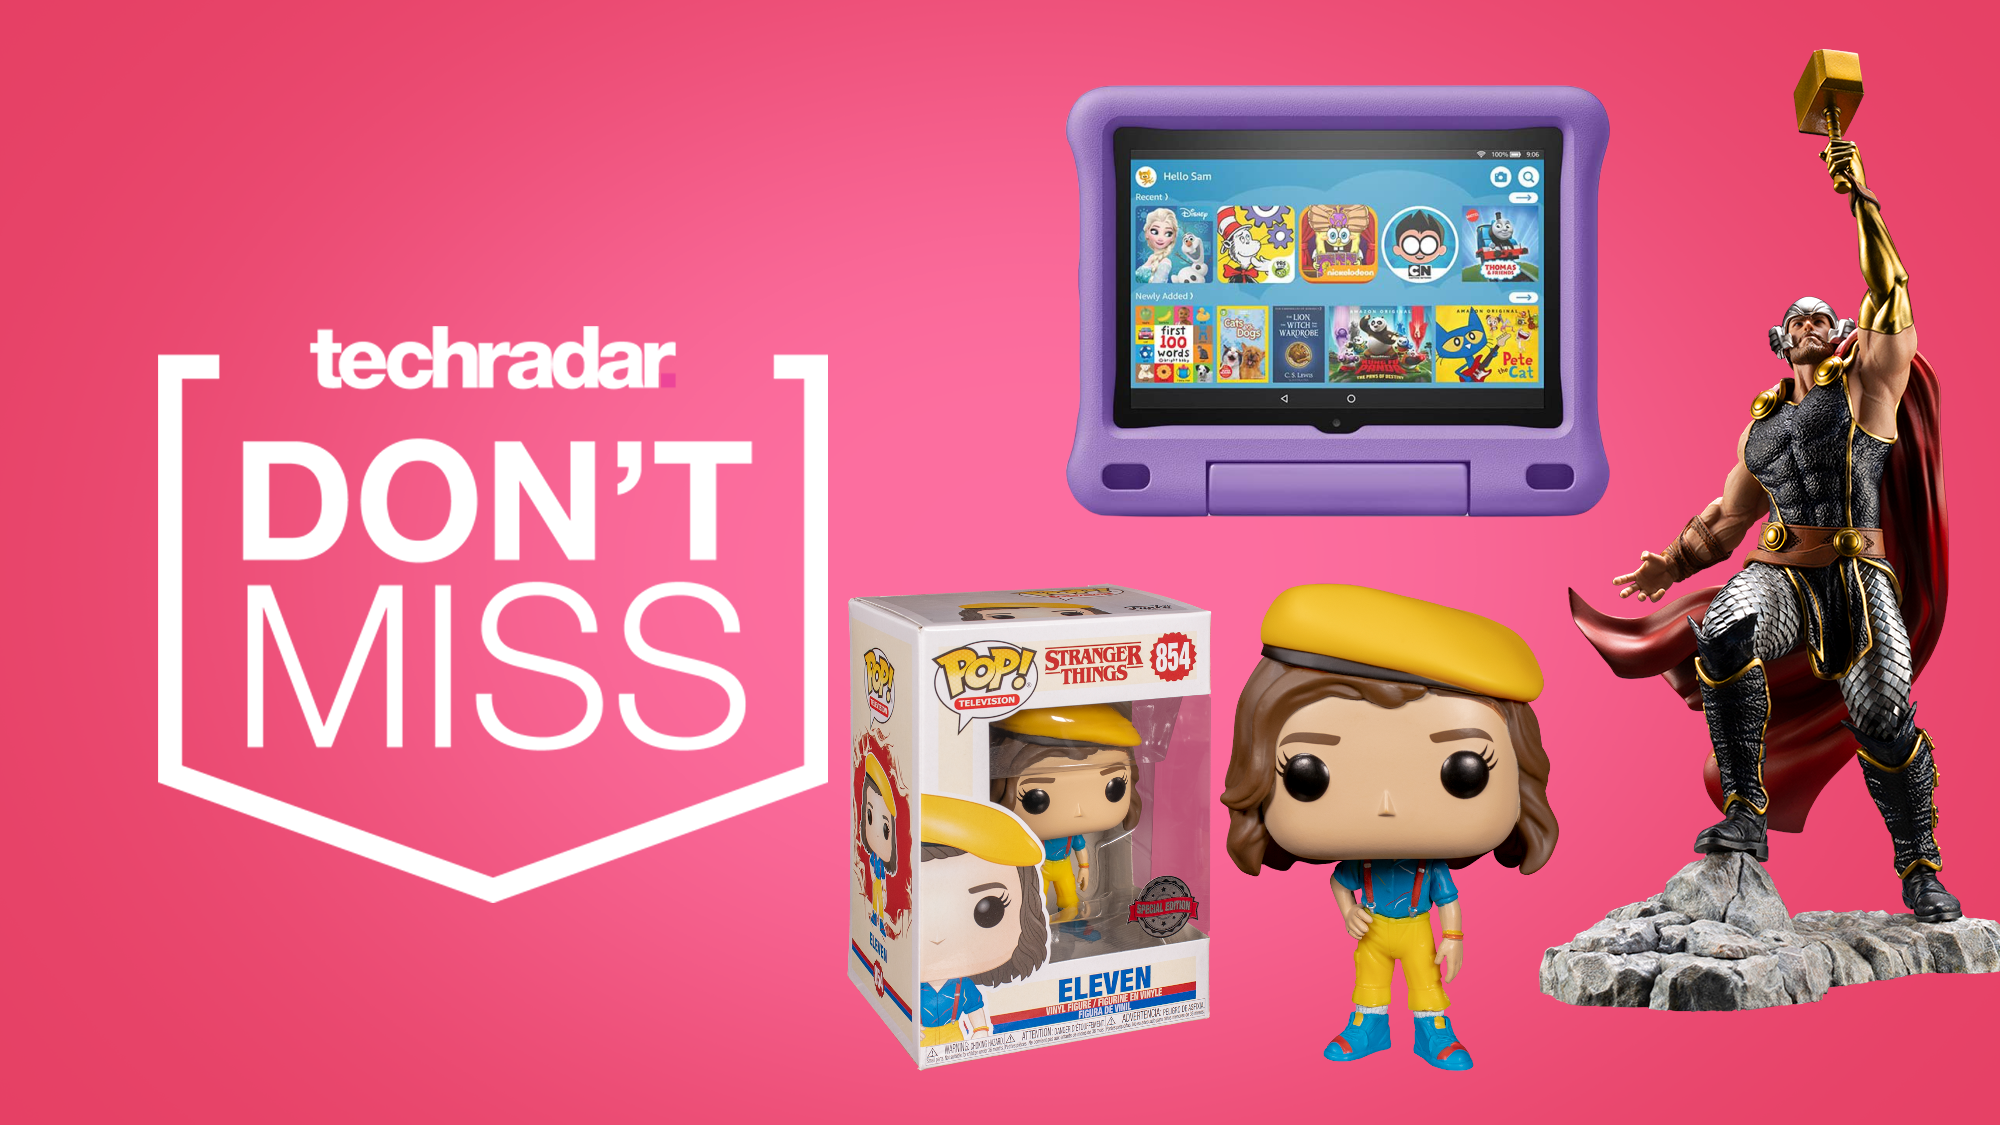 Baby Shark The Game Pre Alpha Roblox Best Prime Day Toy Deals 2020 The Best Lego And Stem Sets Marvel And Funko Figures And More Techradar